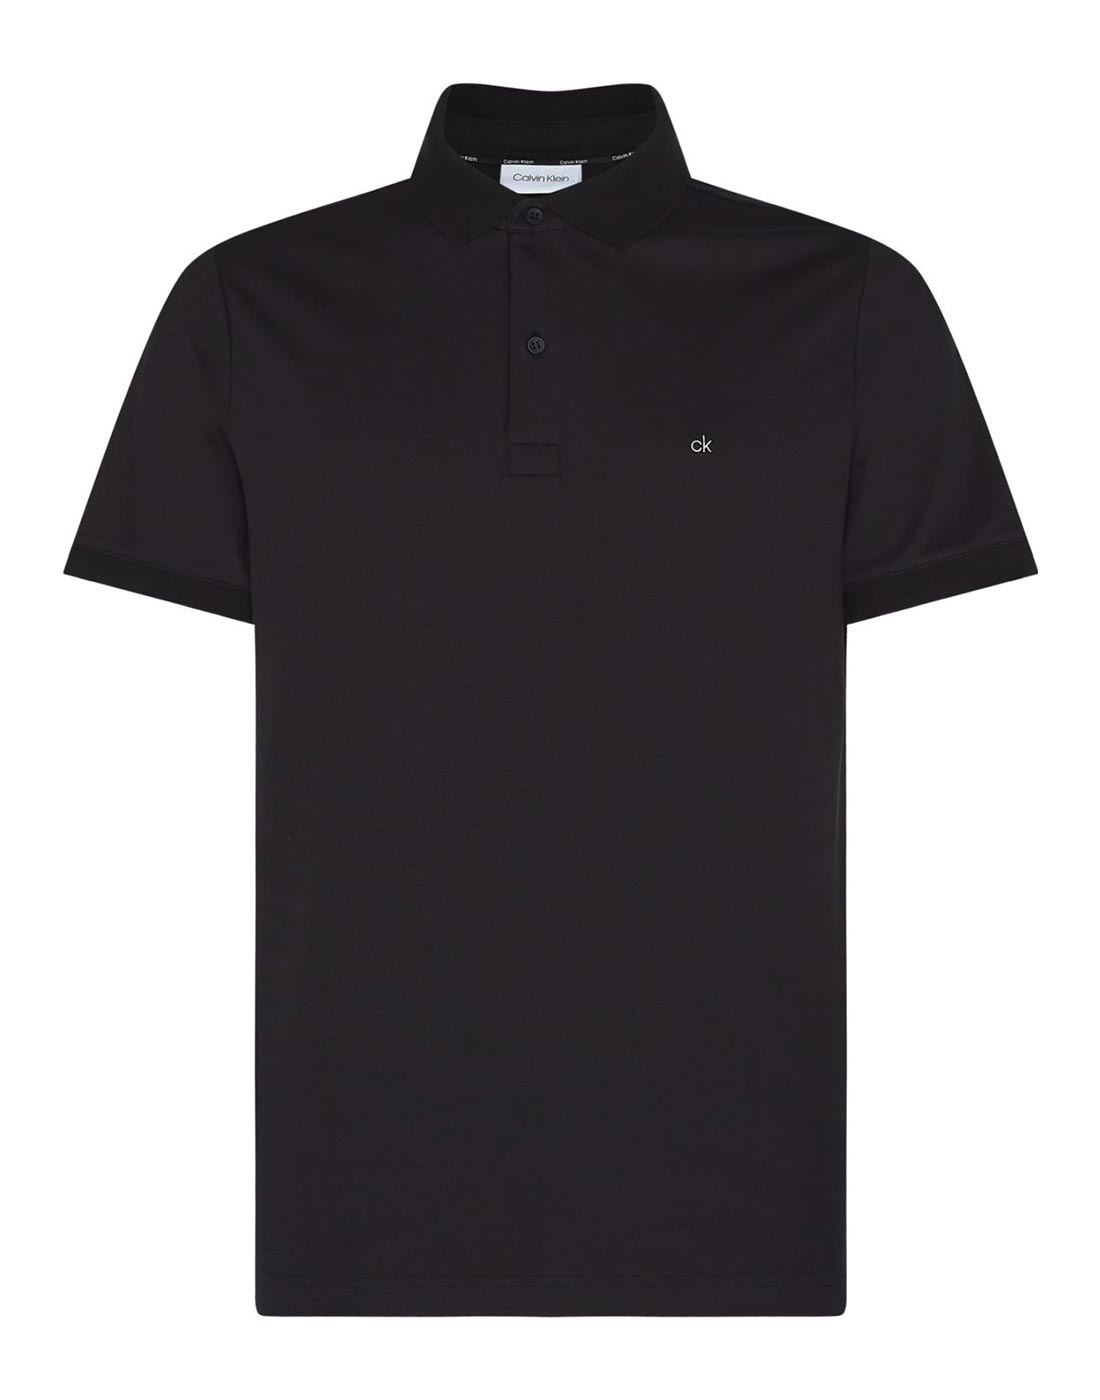 calvin klein black polo shirt with small badge